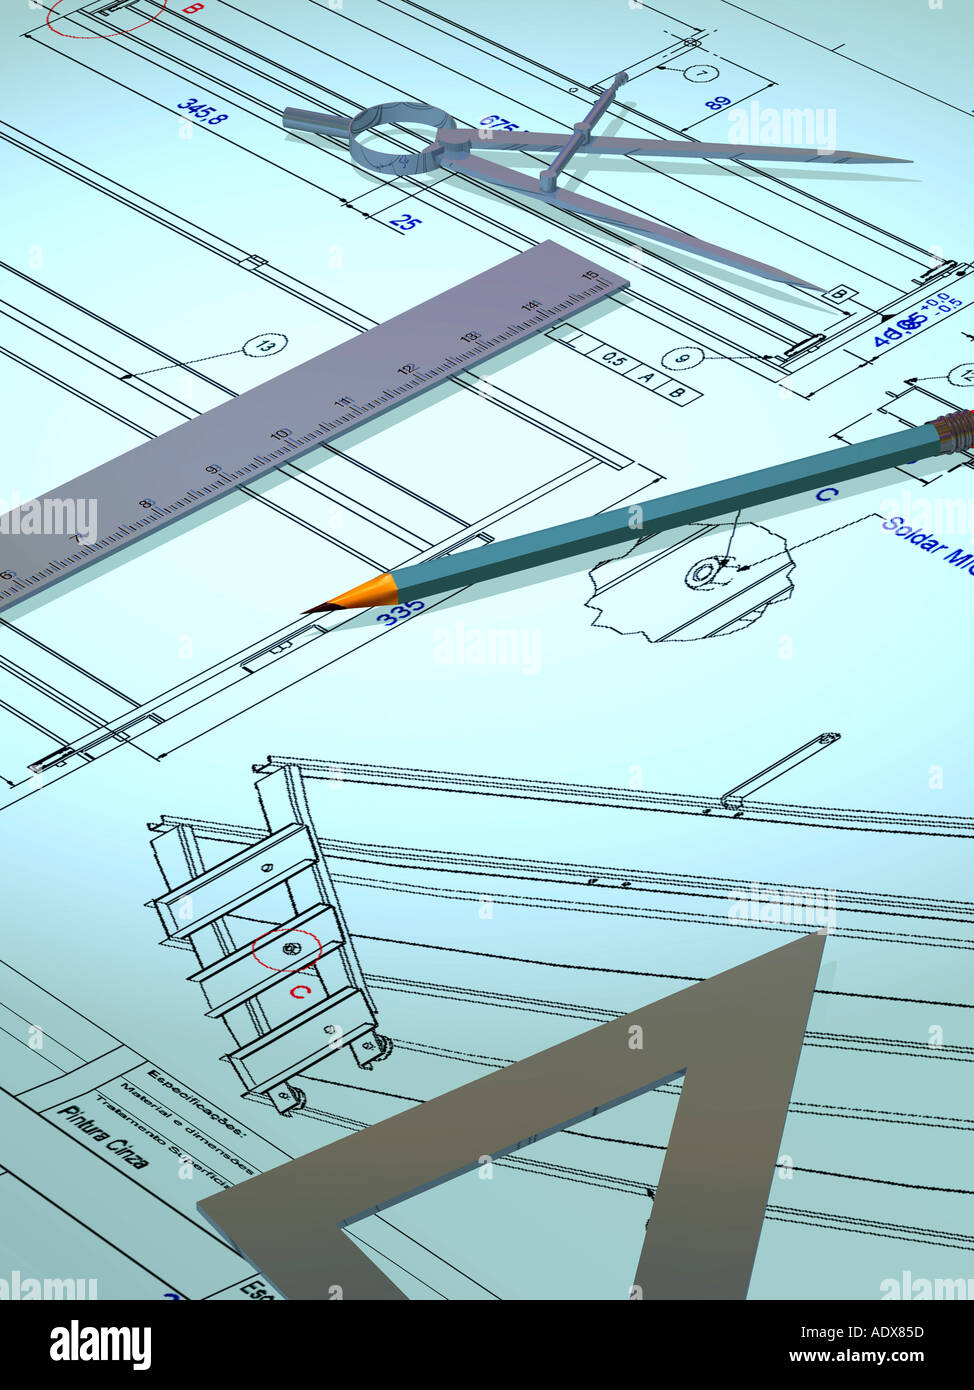 Illustrations ruler compass pencil drawing gear blueprint draft illustrations ruler compass pencil drawing gear blueprint draft design triangle architecture industry construction miscellaneous malvernweather Images